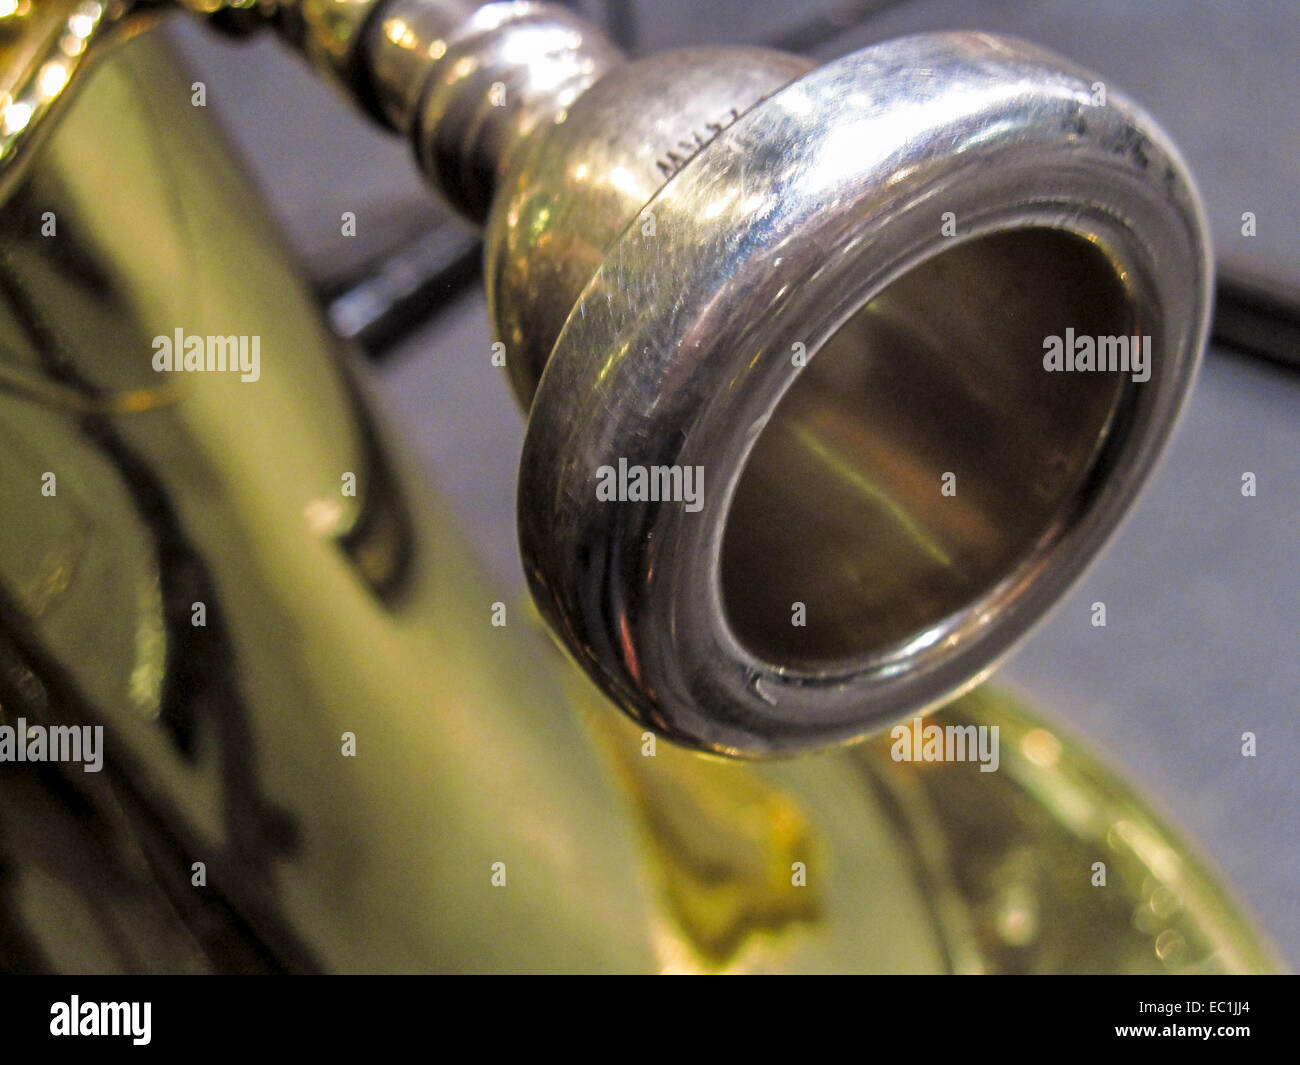 Bass Tuba Stock Photos & Bass Tuba Stock Images - Alamy